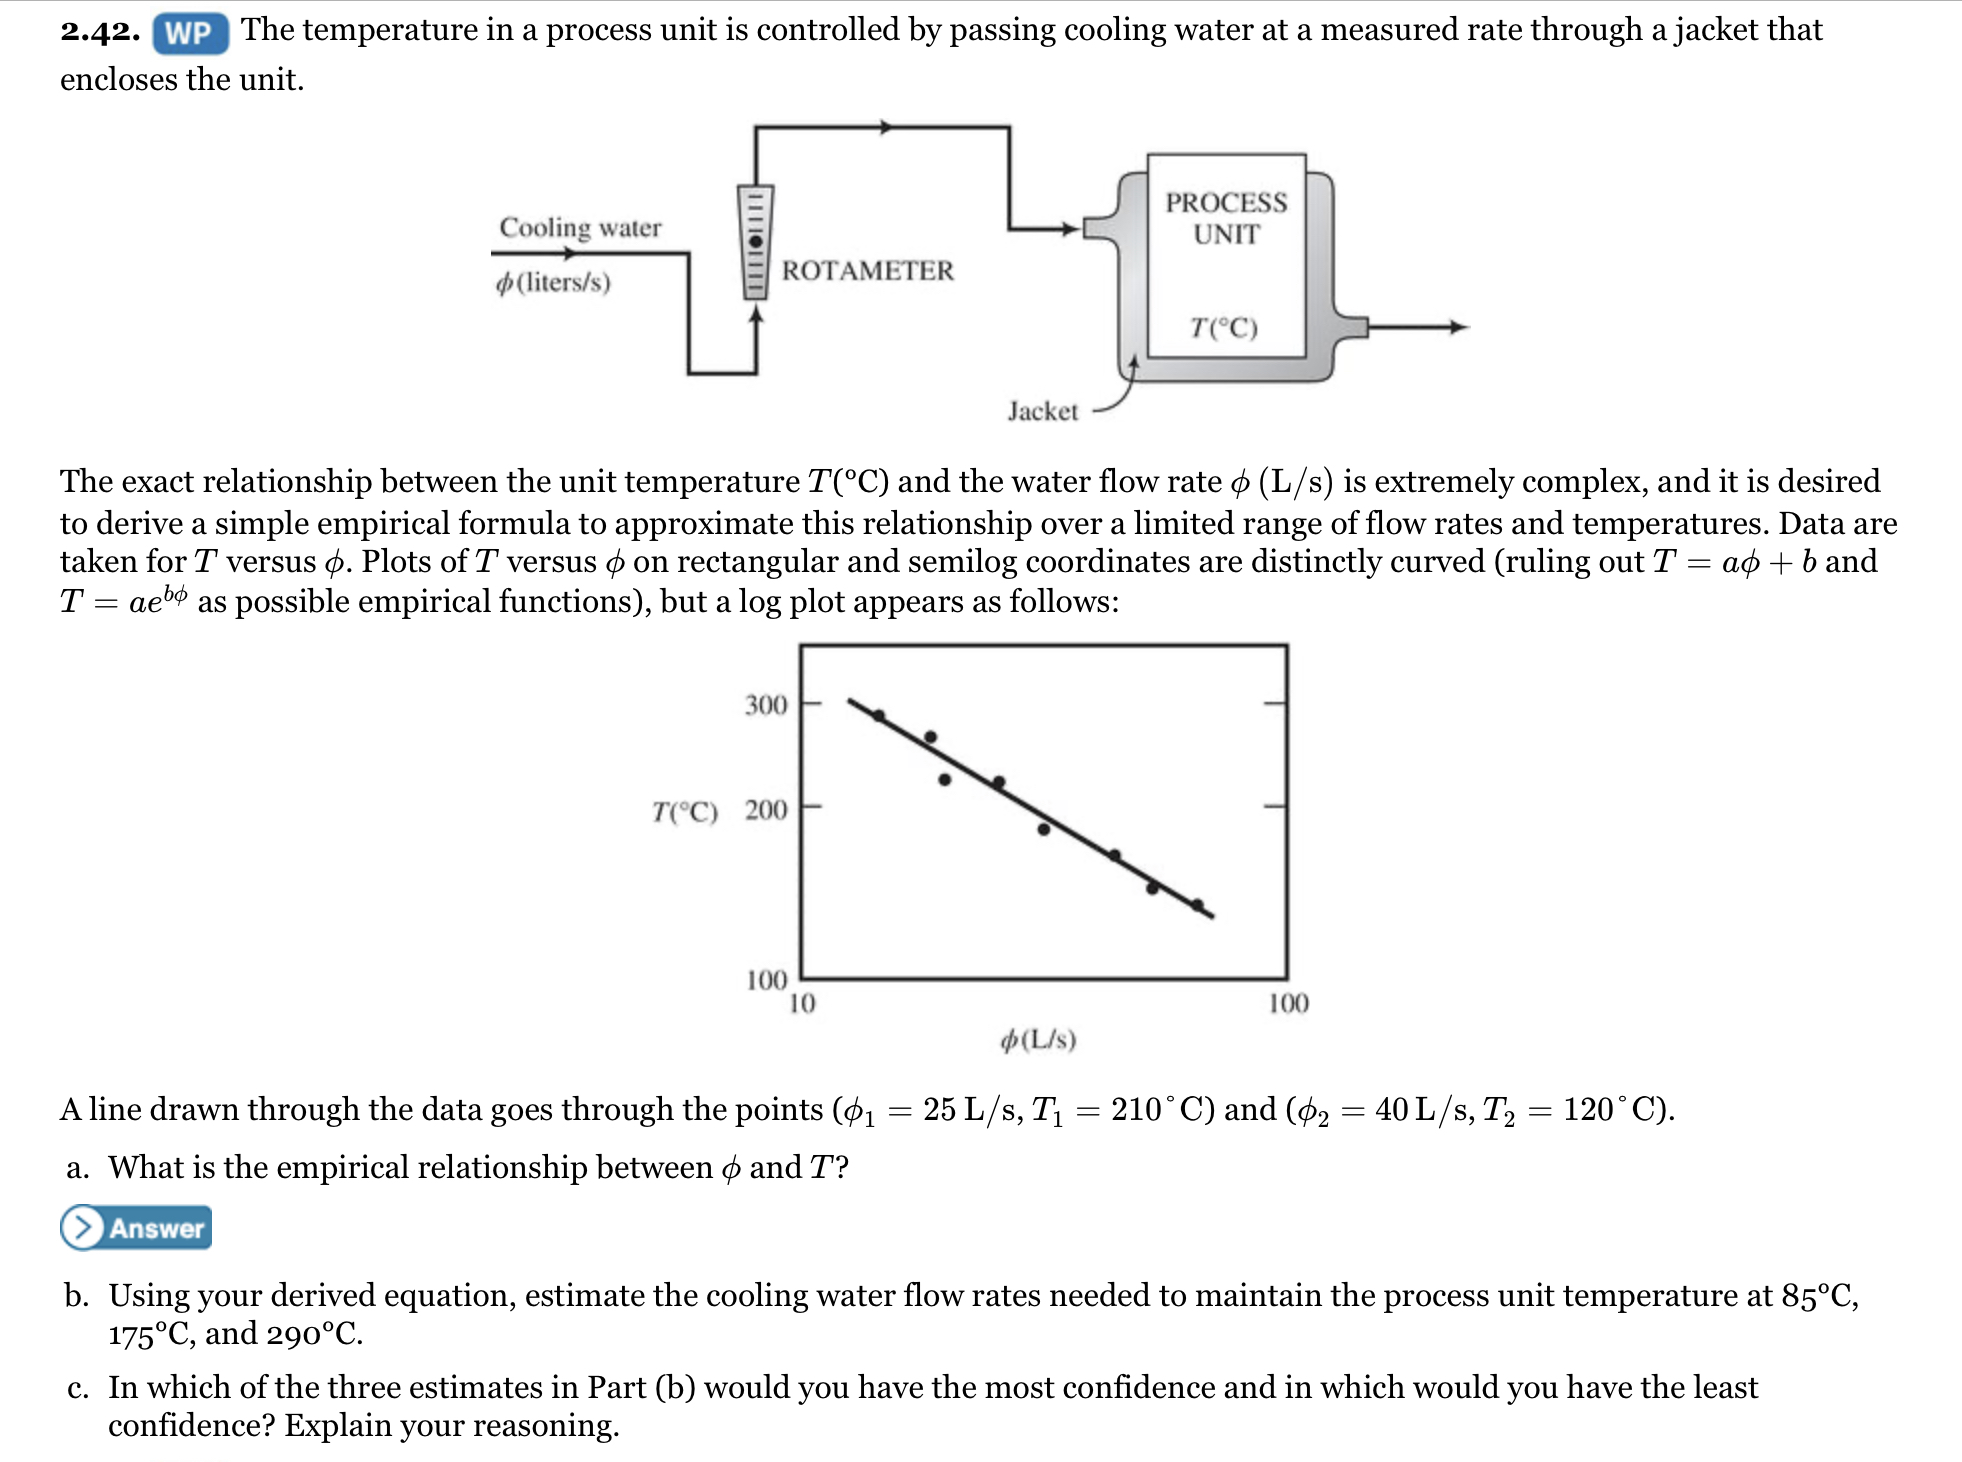 2.42. WP The temperature in a process unit is controlled by passing cooling water at a measured rate through a jacket that encloses the unit. Cooling water PROCESS UNIT ROTAMETER p(liters/s) T(°C) Jacket The exact relationship between the unit temperature T(°C) and the water flow rate o (L/s) is extremely complex, and it is desired to derive a simple empirical formula to approximate this relationship over a limited range of flow rates and temperatures. Data are taken for T versus ø. Plots of T versus ø on rectangular and semilog coordinates are distinctly curved (ruling out T = aø + b and T = aebó as possible empirical functions), but a log plot appears as follows: 300 T(°C) 200 100 10 100 p(L/s) A line drawn through the data goes through the points (ø1 = 25 L/s, T = 210°C) and (ø2 = 40 L/s, T, = 120°C). a. What is the empirical relationship between o and T? Answer b. Using your derived equation, estimate the cooling water flow rates needed to maintain the process unit temperature at 85°C, 175°C, and 290°C. c. In which of the three estimates in Part (b) would you have the most confidence and in which would you have the least confidence? Explain your reasoning.